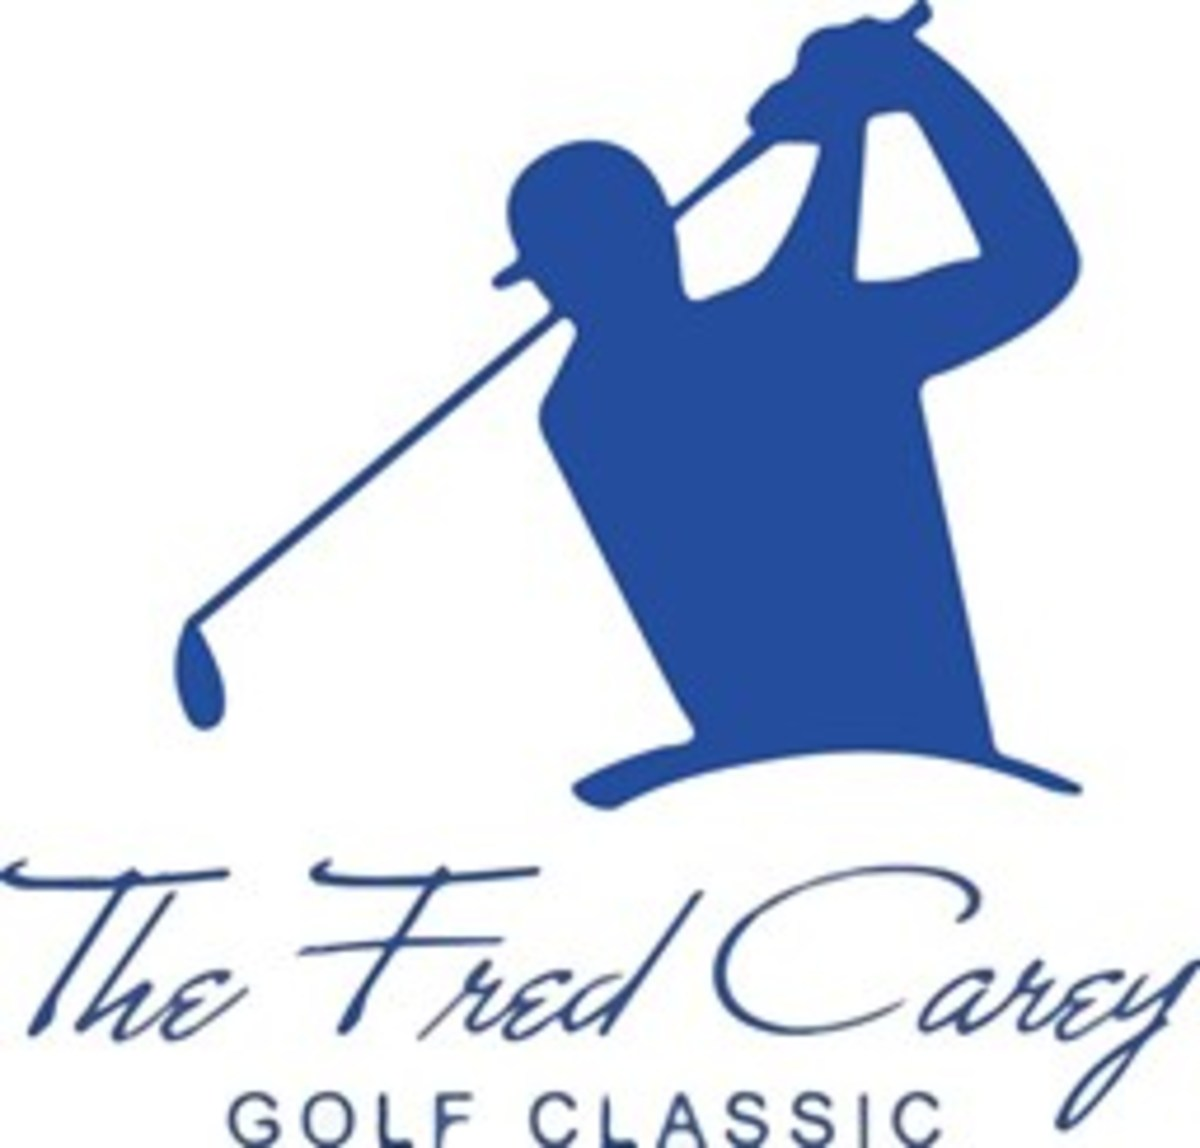 Juniors O'Brien and Basu Organize Very Successful Fred Carey Golf Classic